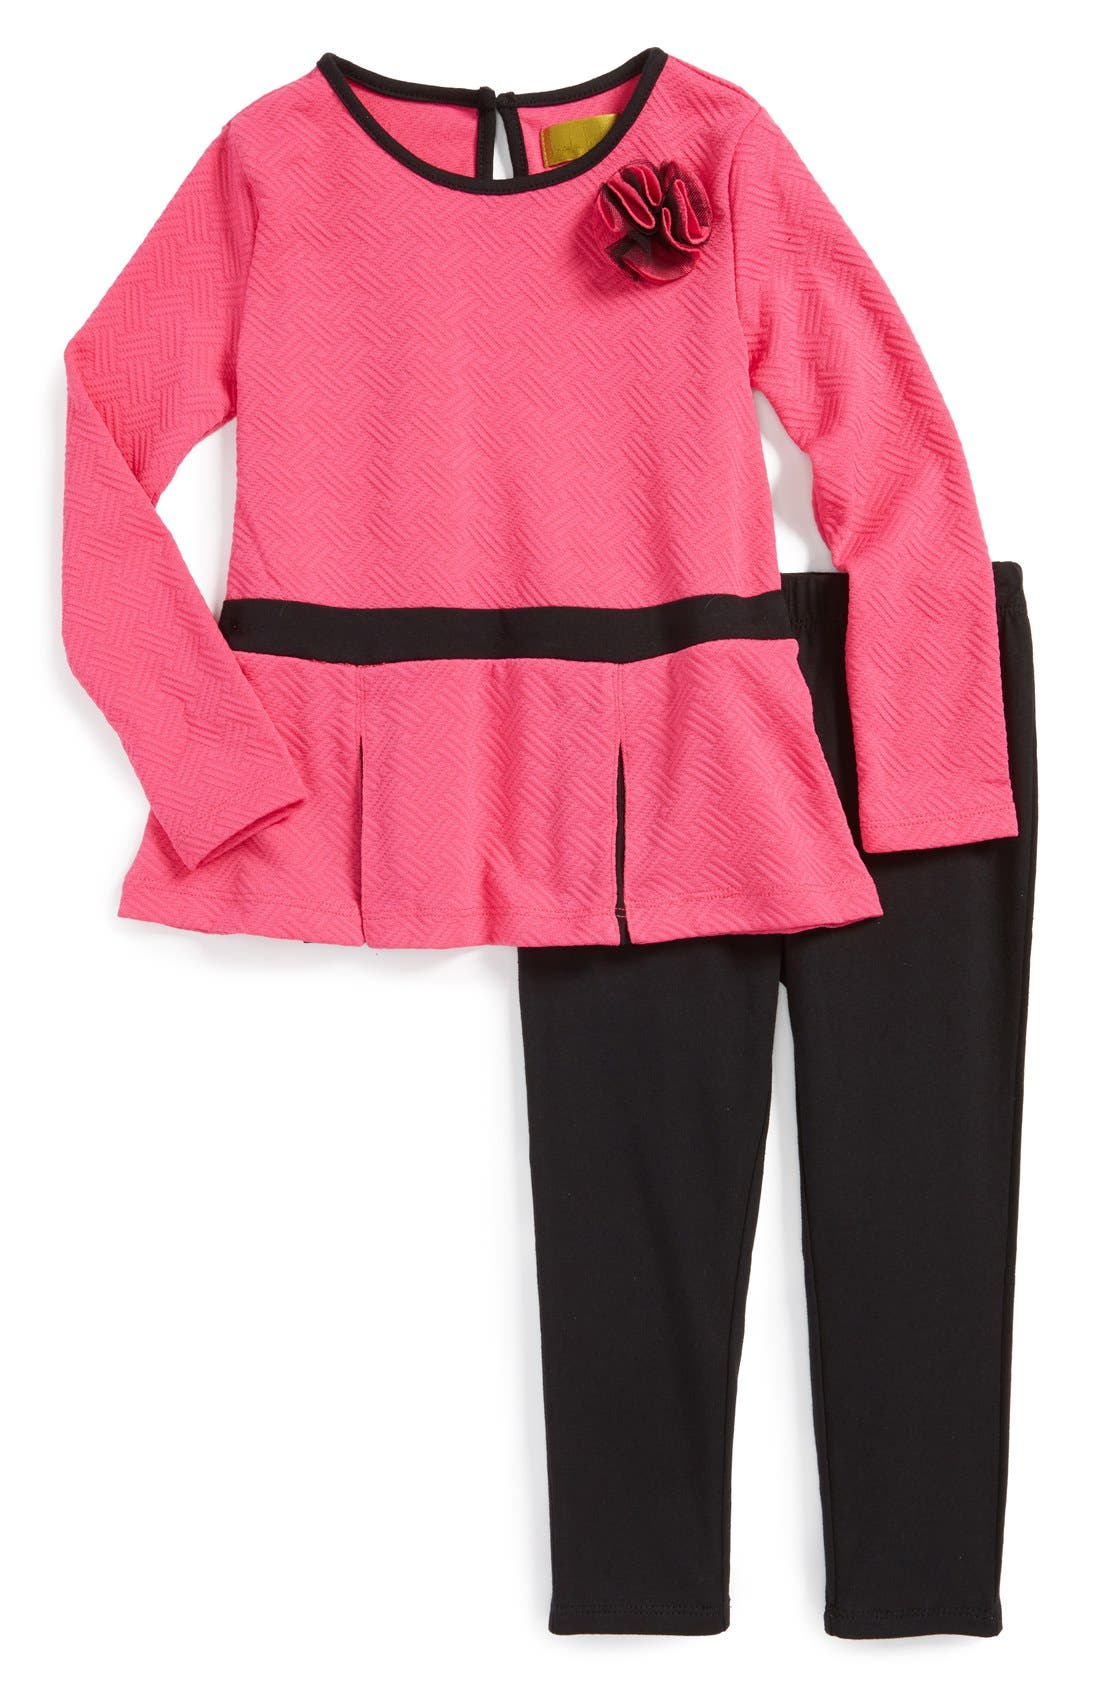 Main Image - Nicole Miller Colorblock Tunic & Leggings (Little Girls) (Online Only)